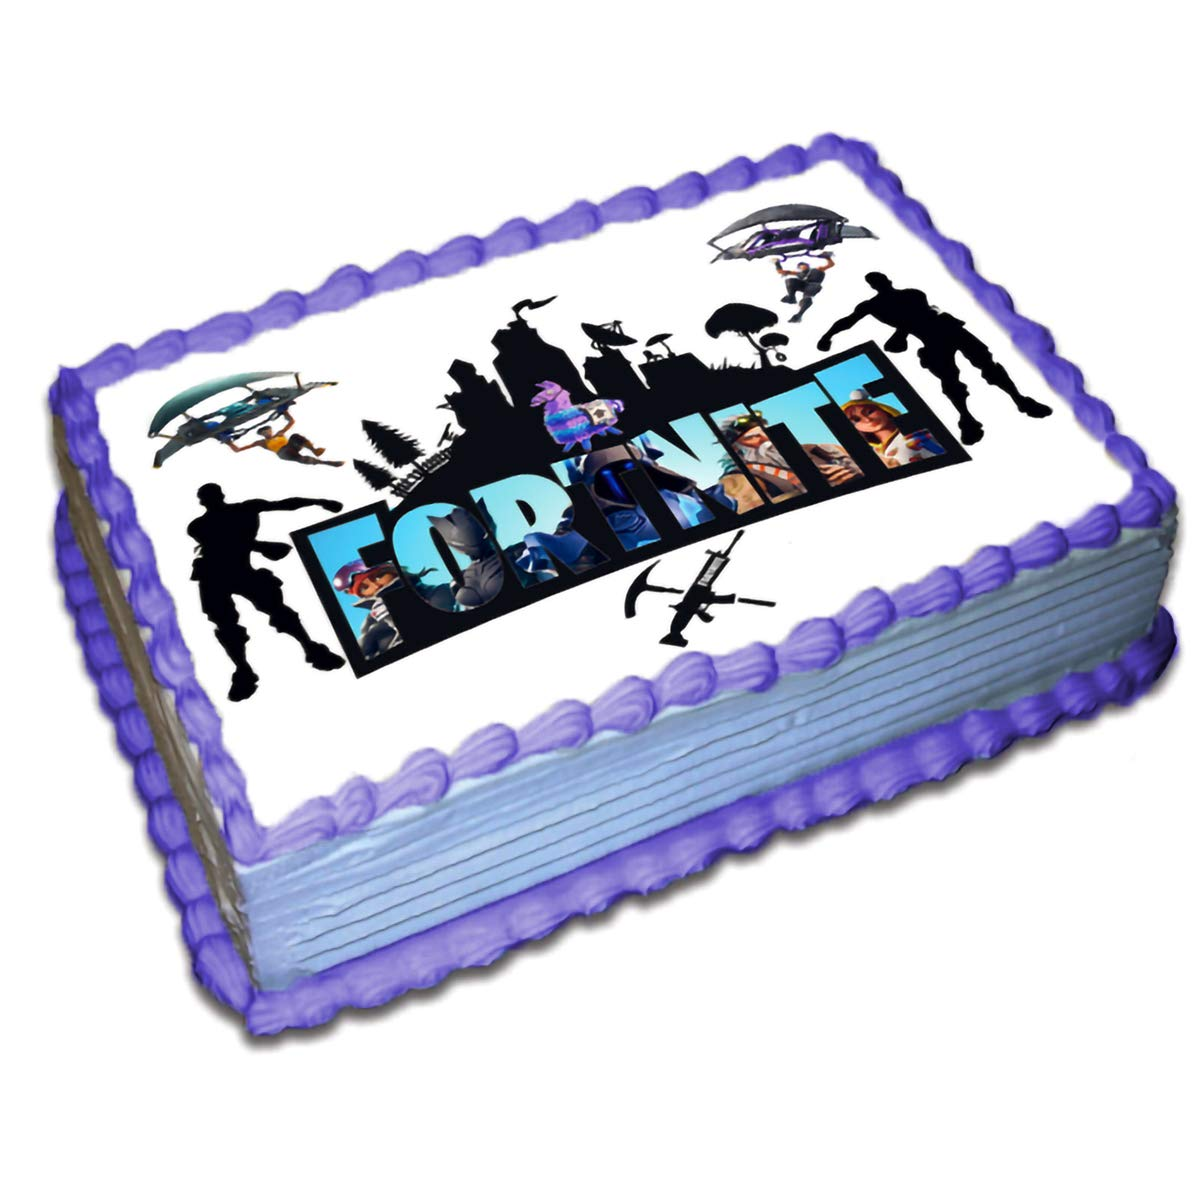 Fortnite Cake Toppers Icing Sugar Paper 8.5 x 11.5 Inches Sheet Edible Frosting Photo Birthday Cake Topper (Best Quality Printing)